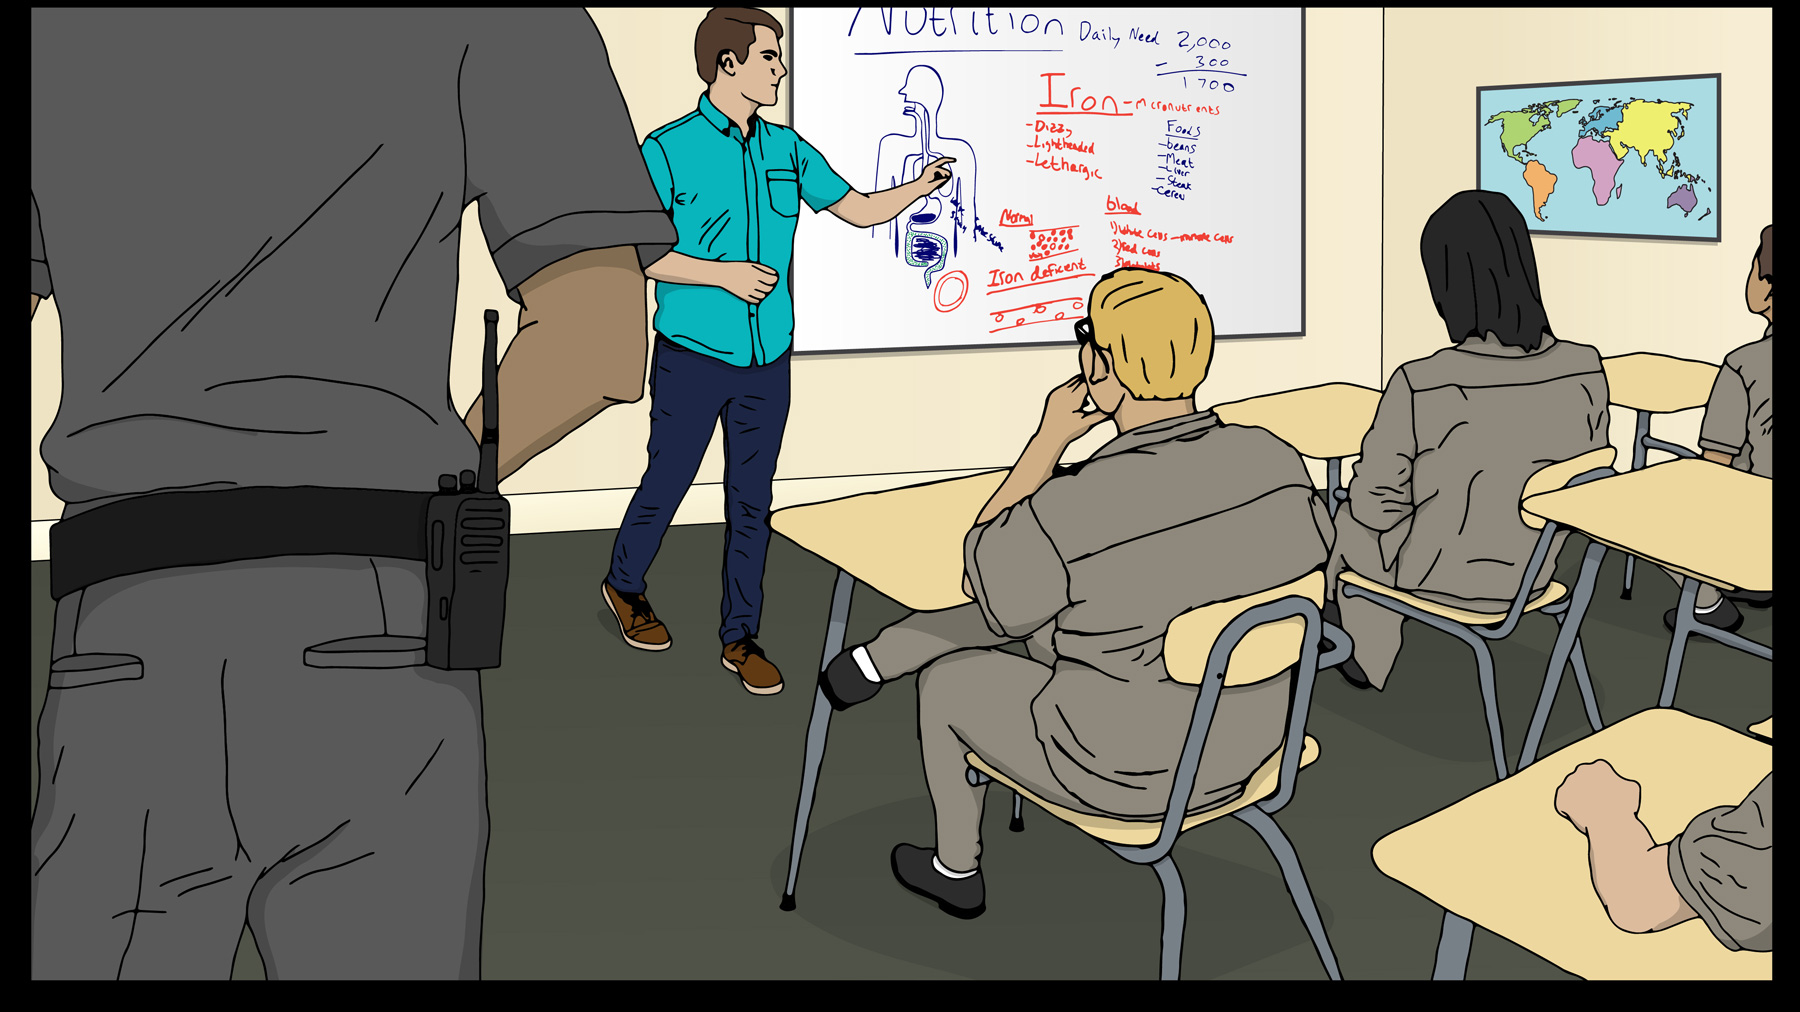 Illustration of youth and teacher in guarded classroom. Illustration by Katie Miller